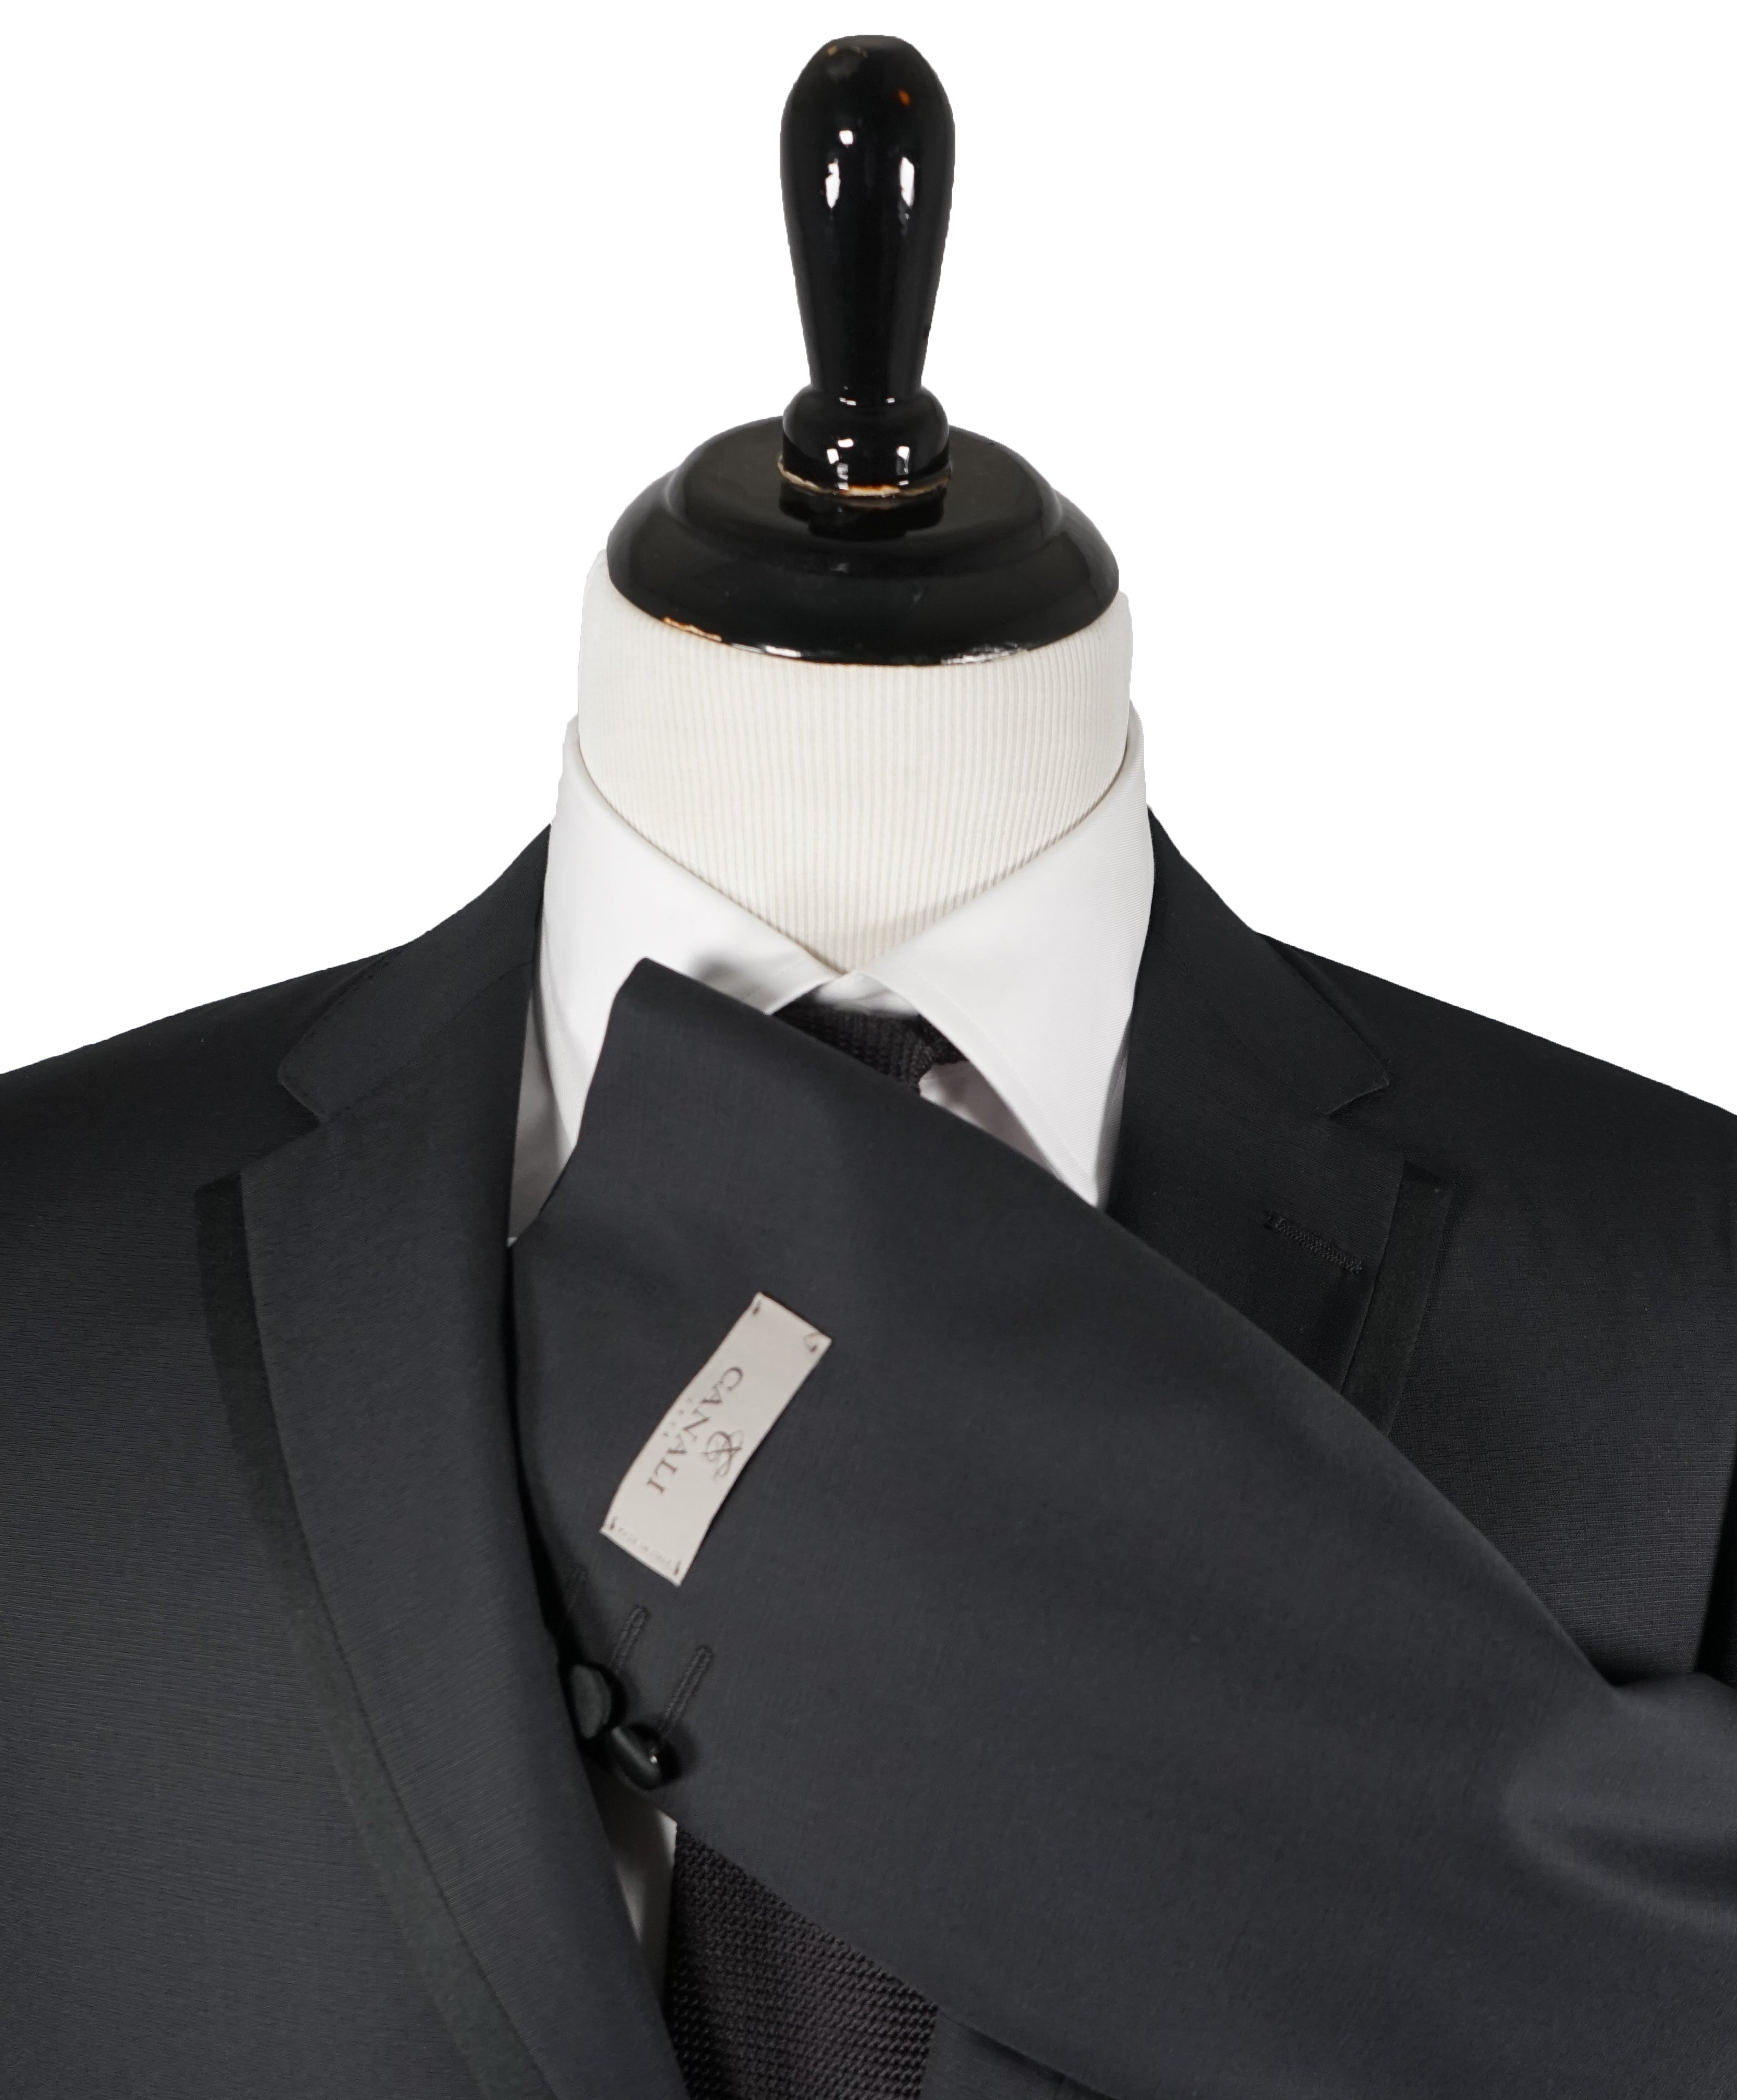 CANALI - Tonal Textured Weave Black Tipped Tuxedo Suit - 44R